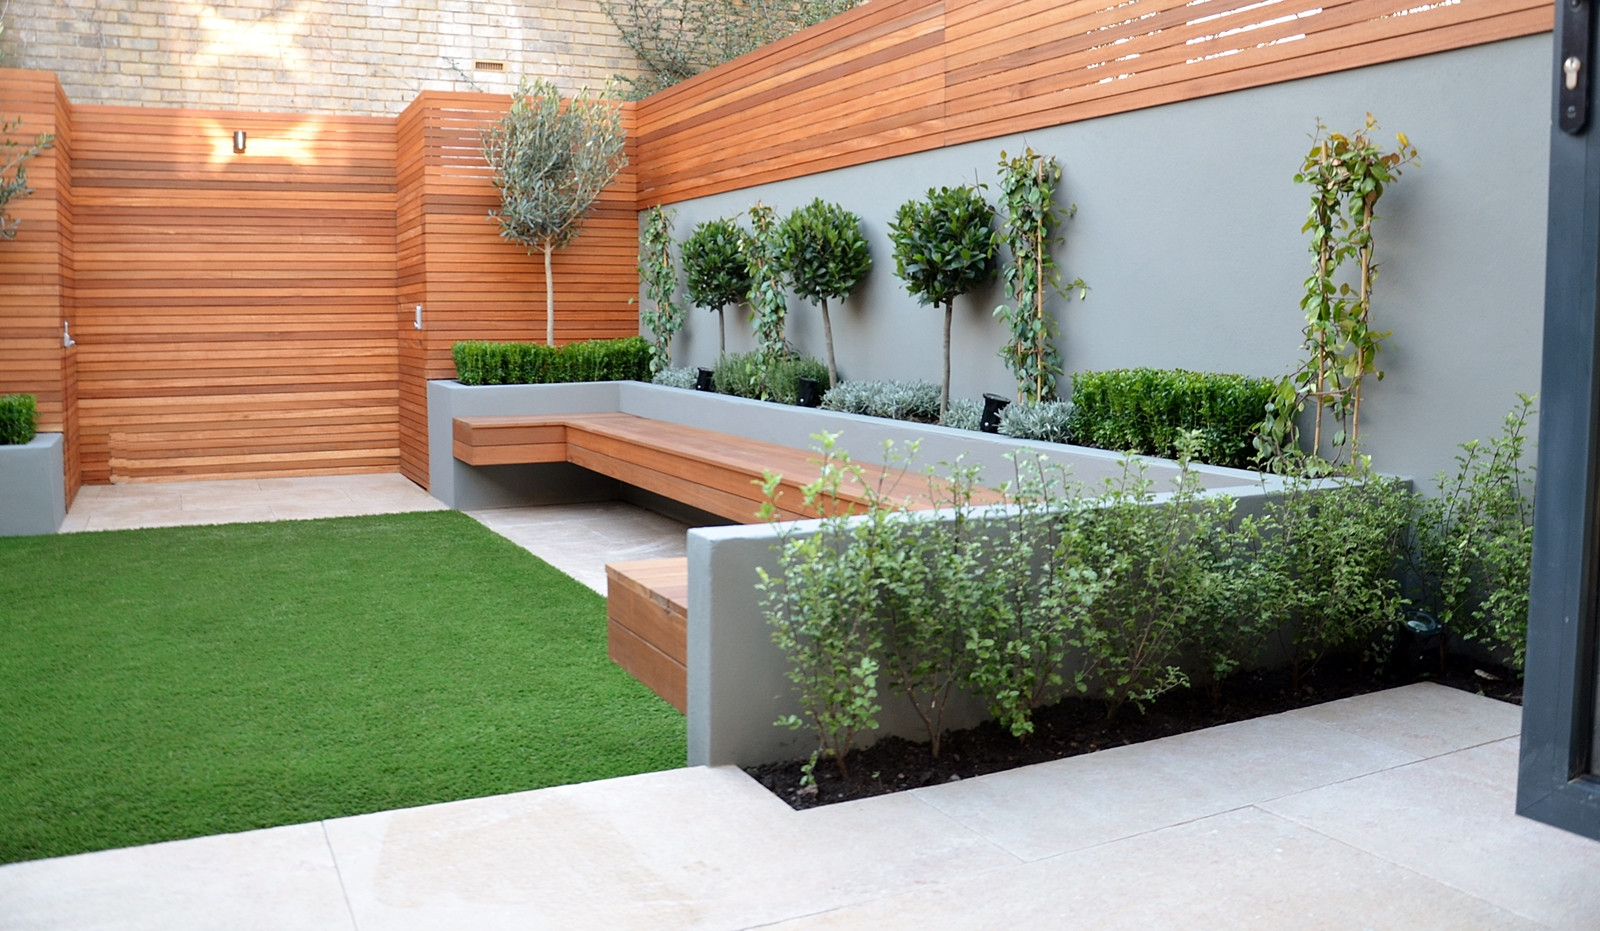 Best ideas about Modern Backyard Ideas . Save or Pin clapham and London garden design 2015 Now.